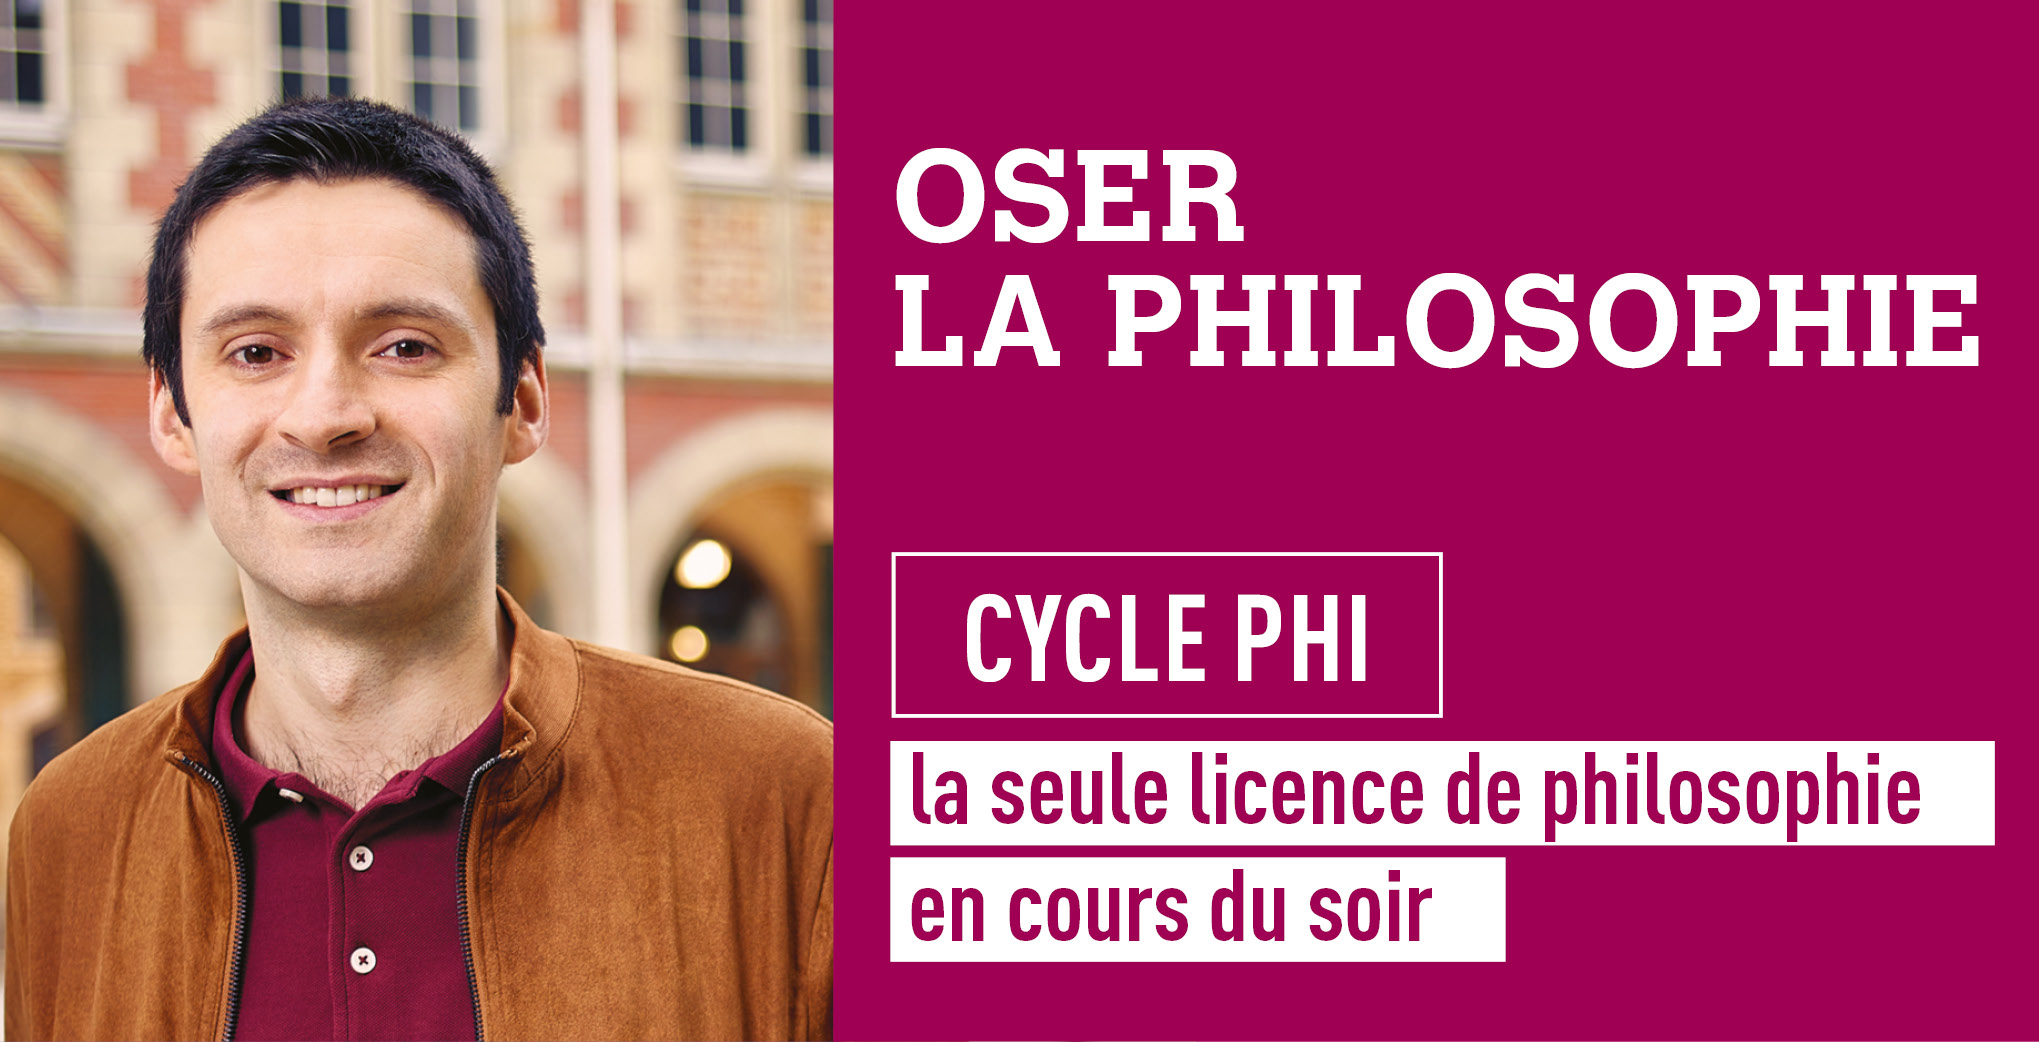 PHILO_cycle phi_juillet2020